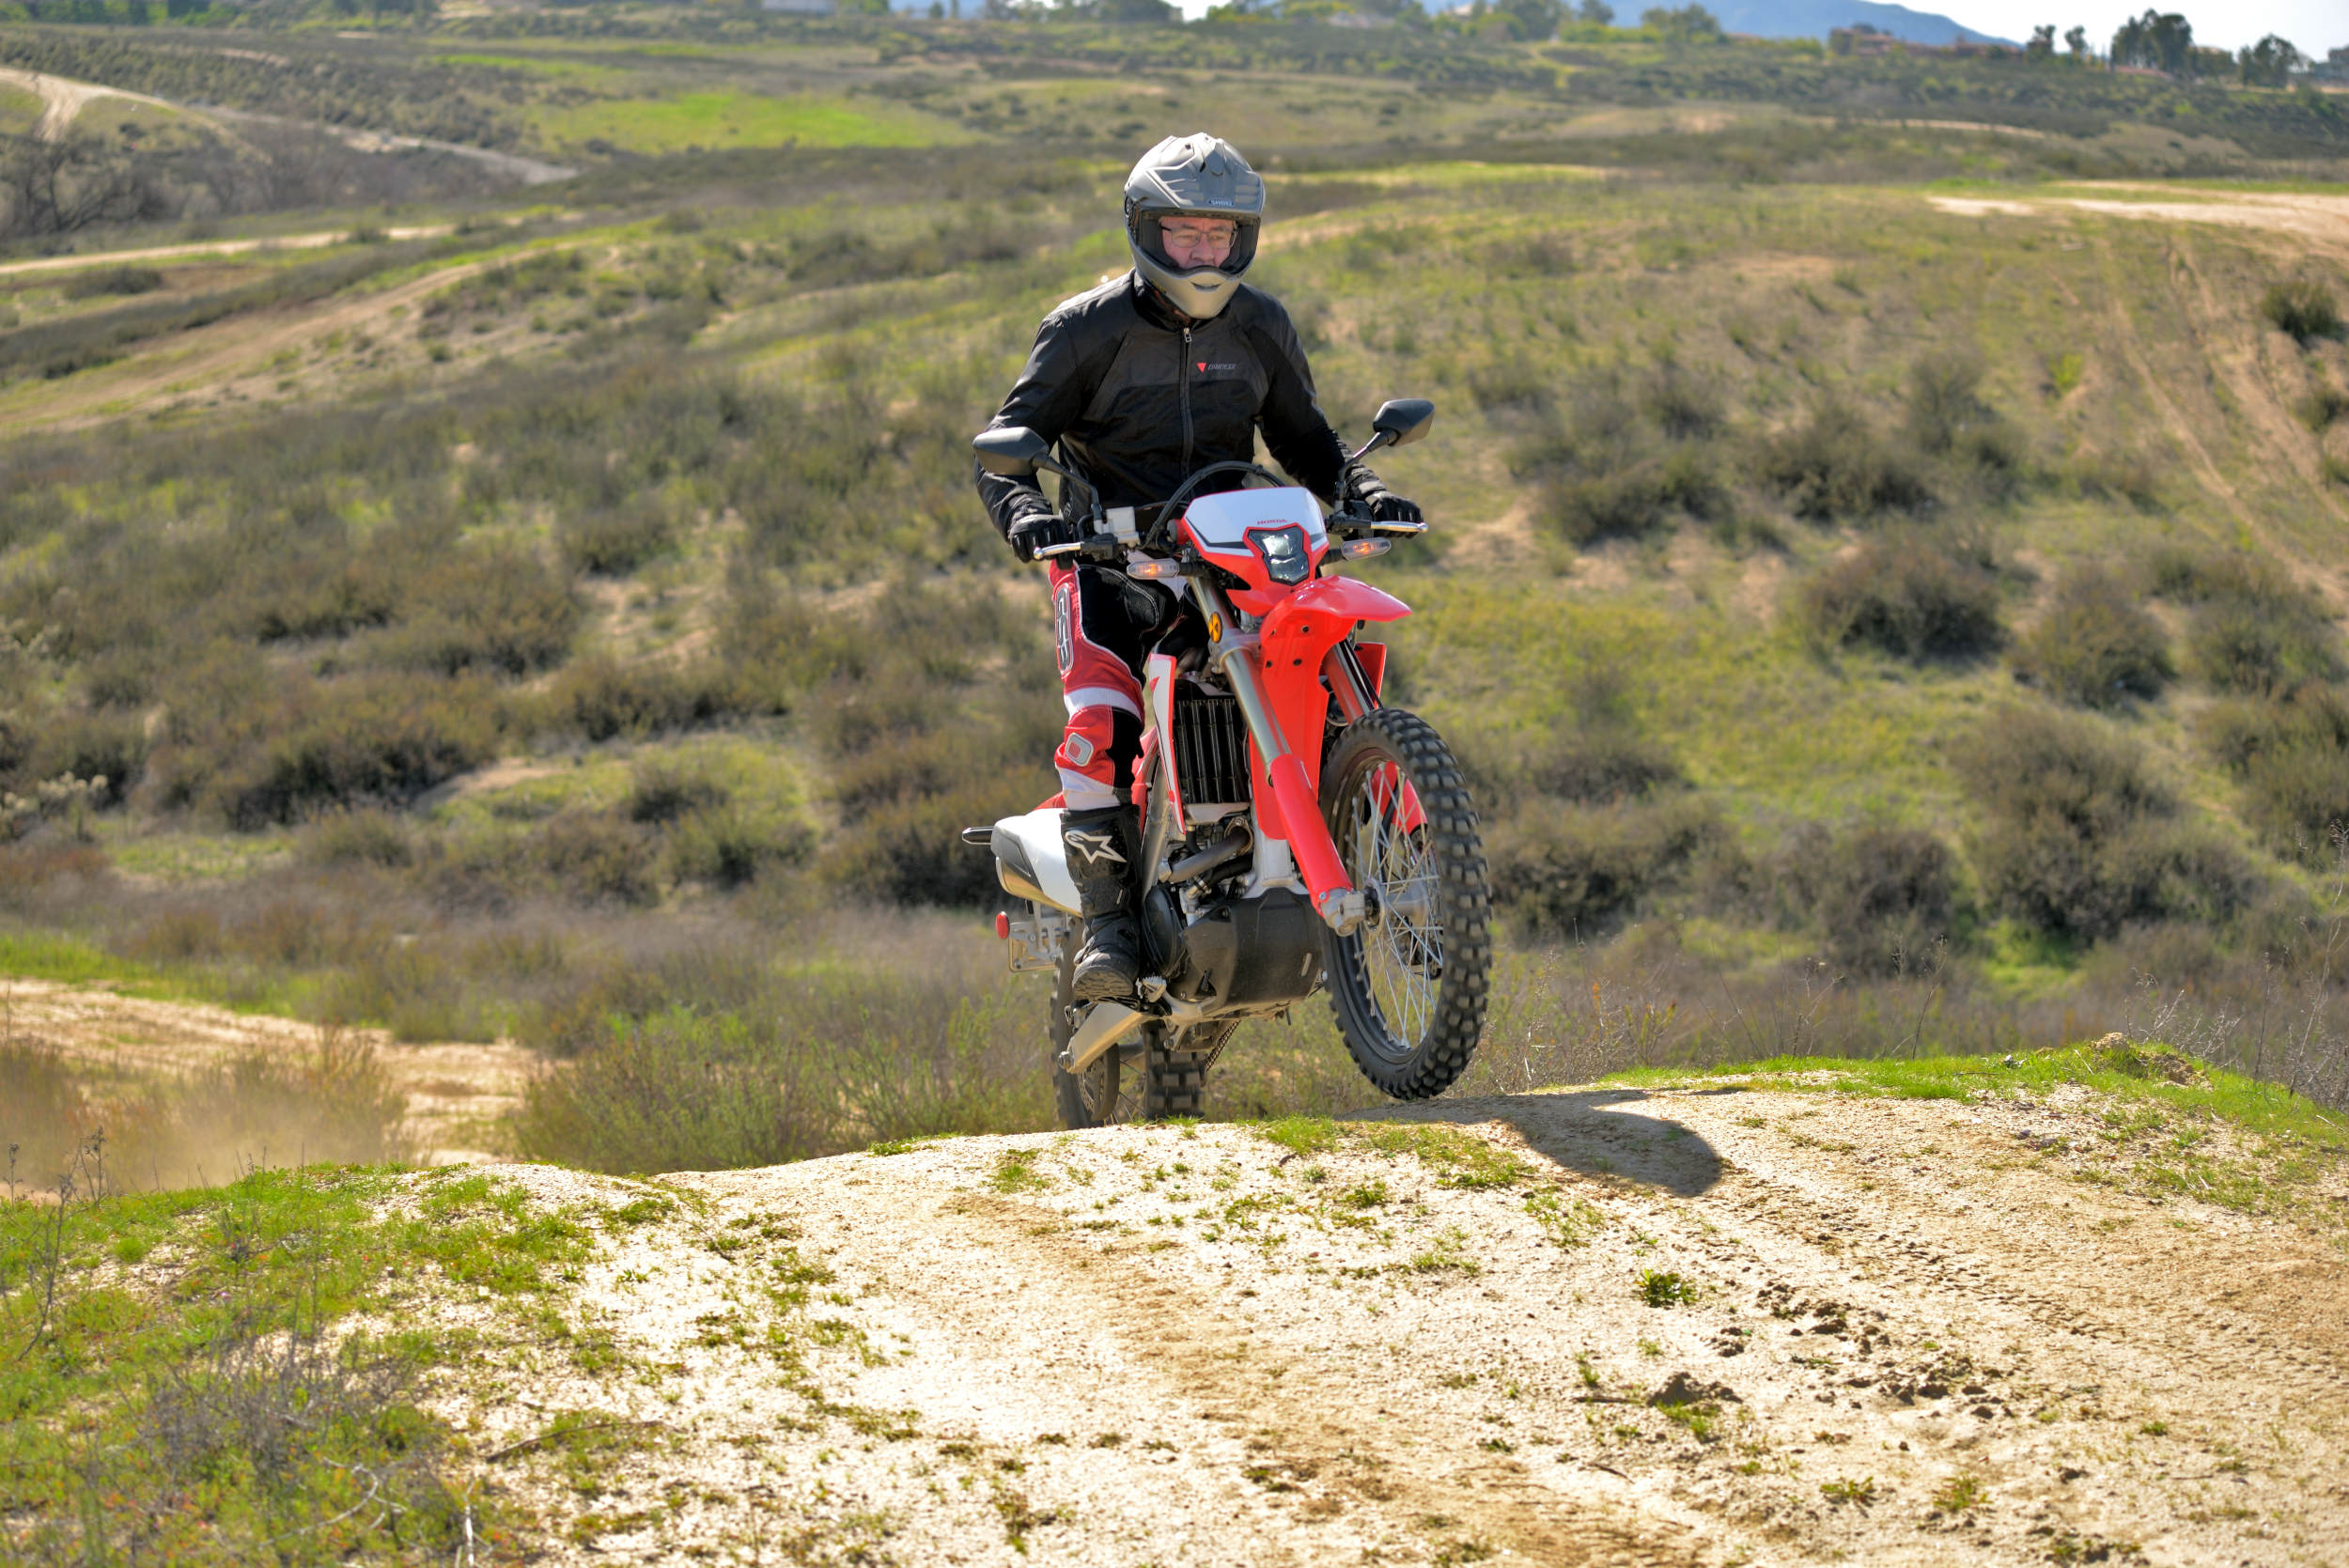 2019 Honda CRF450L: MD Ride Review, Part 2 - MotorcycleDaily